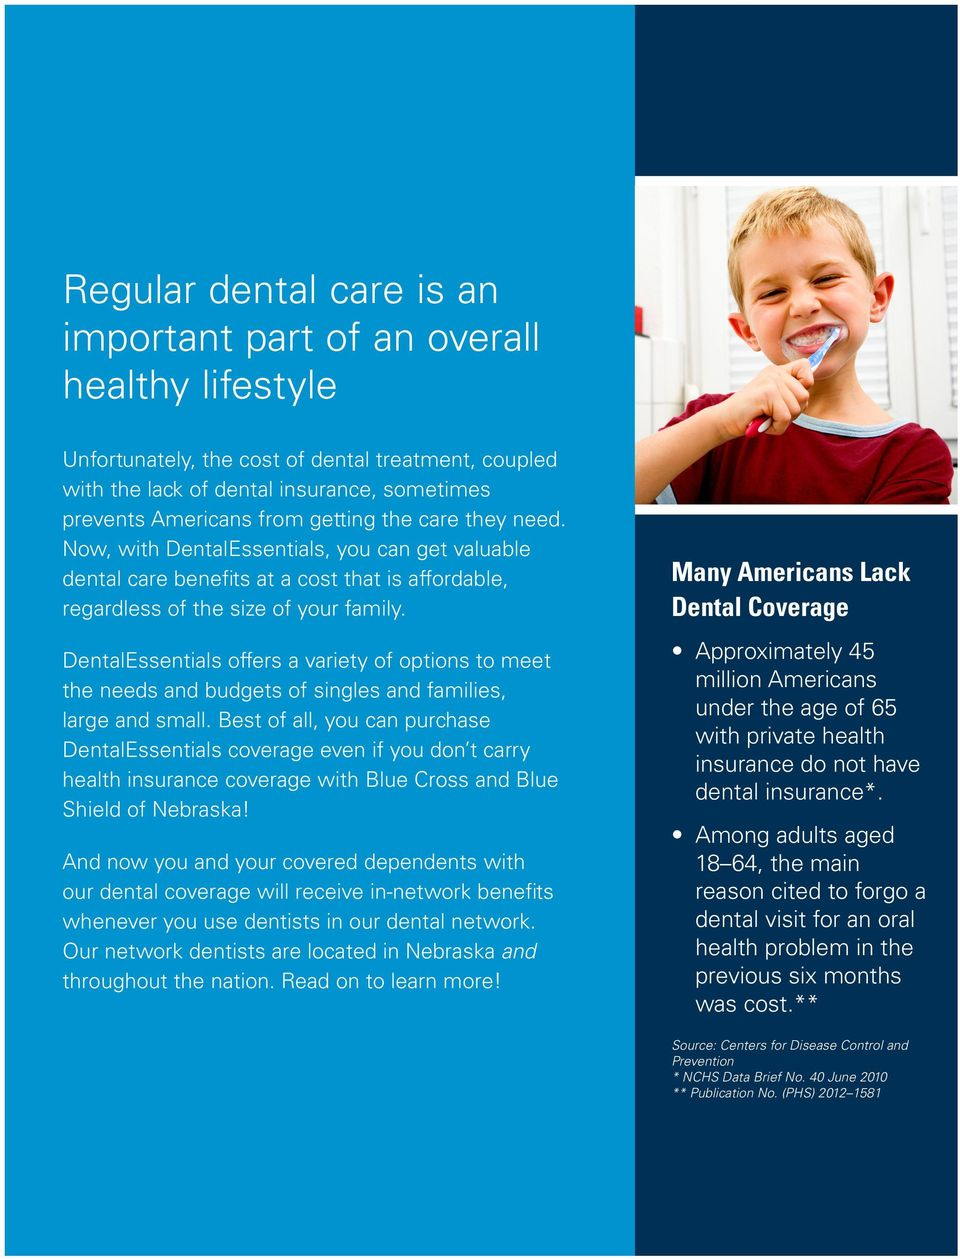 DentalEssentials offers a variety of options to meet the needs and budgets of singles and families, large and small.